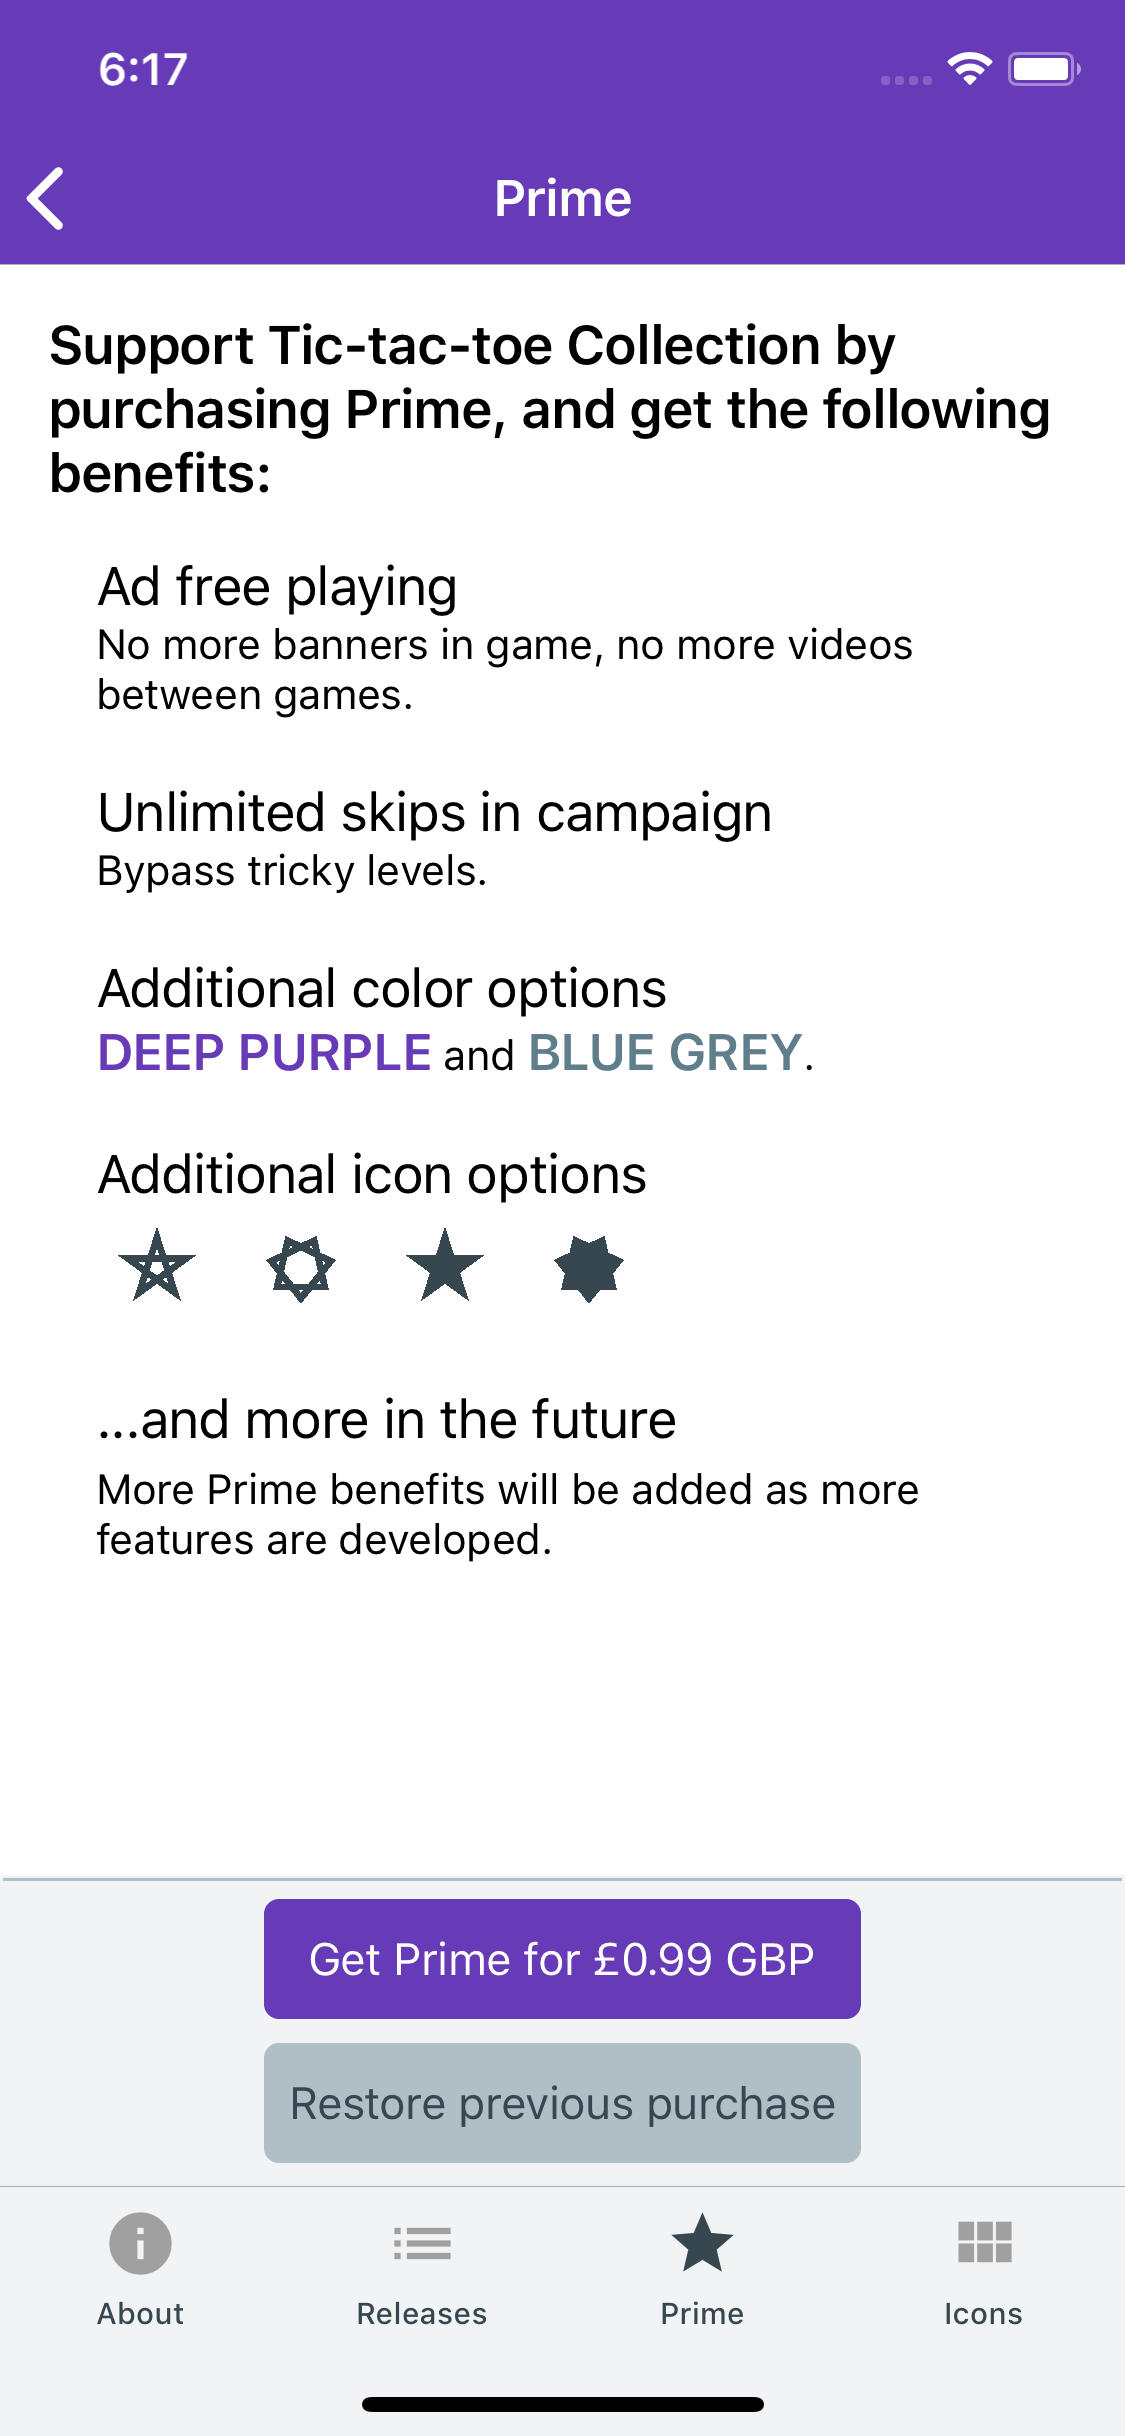 Prime on iOS in 0.19